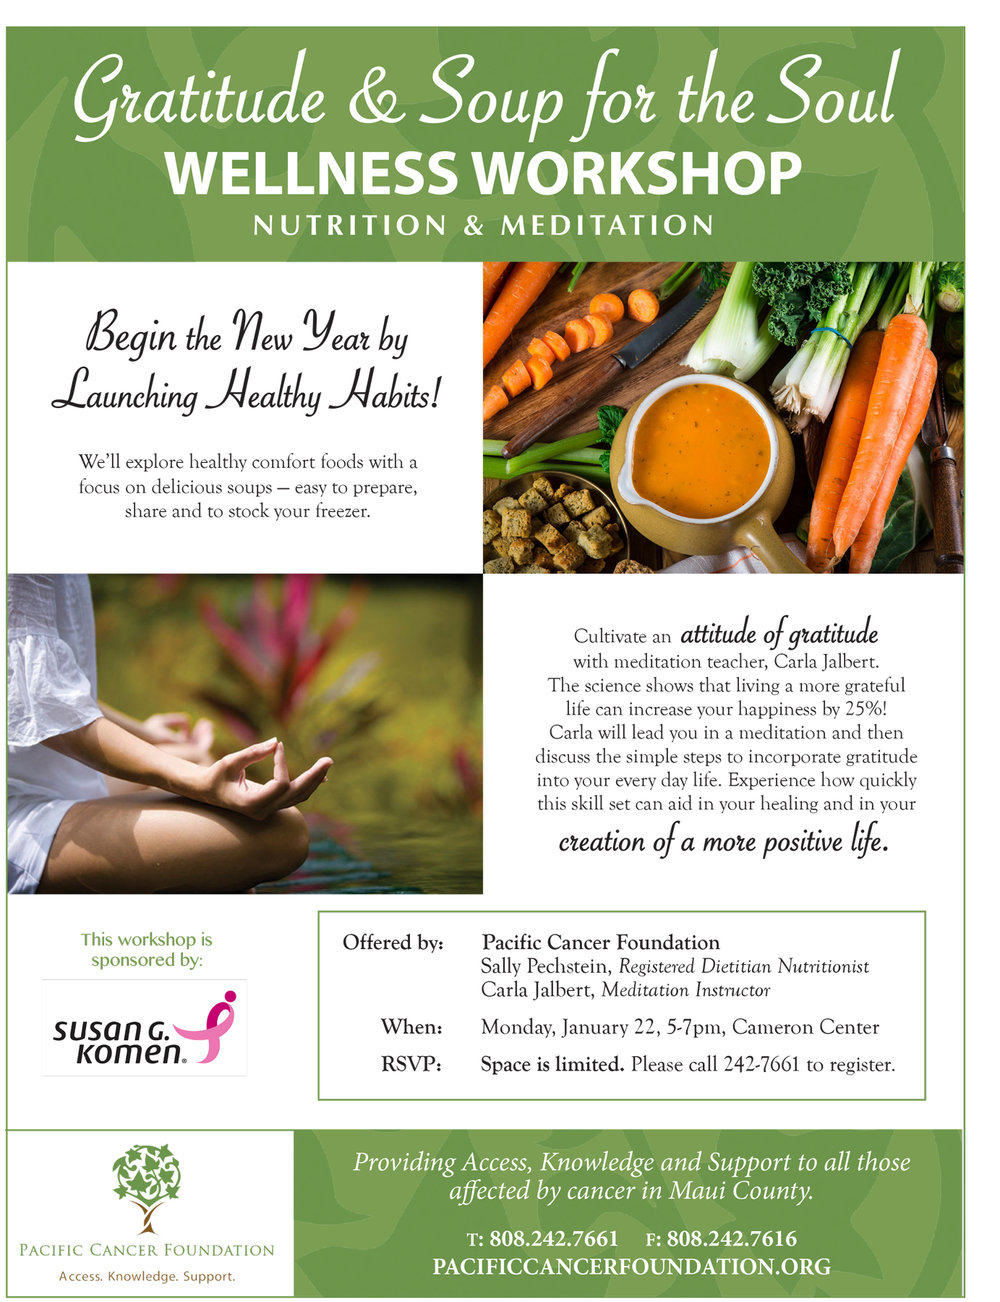 Gratitude-and-Soup-for-the-Soul-Workshop-Flyer.jpg